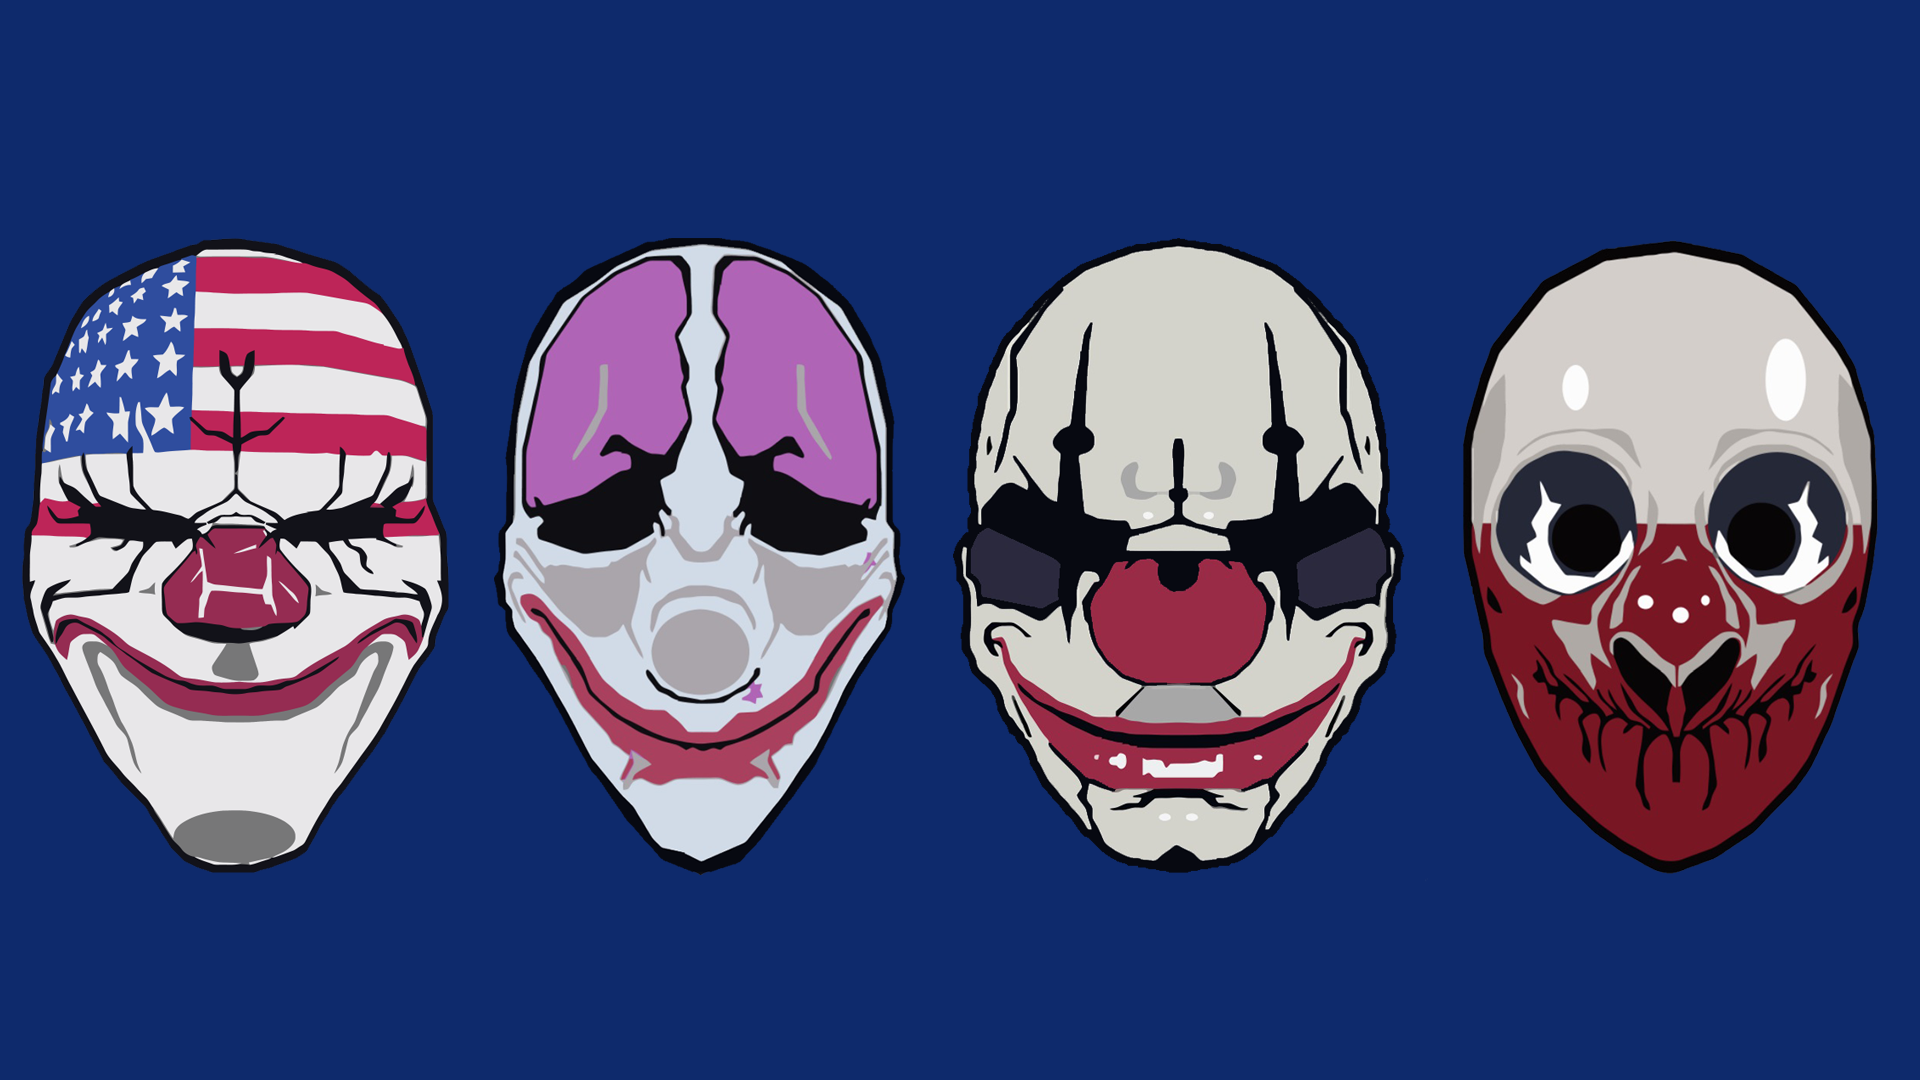 Group Of Payday Masks Wallpaper 2